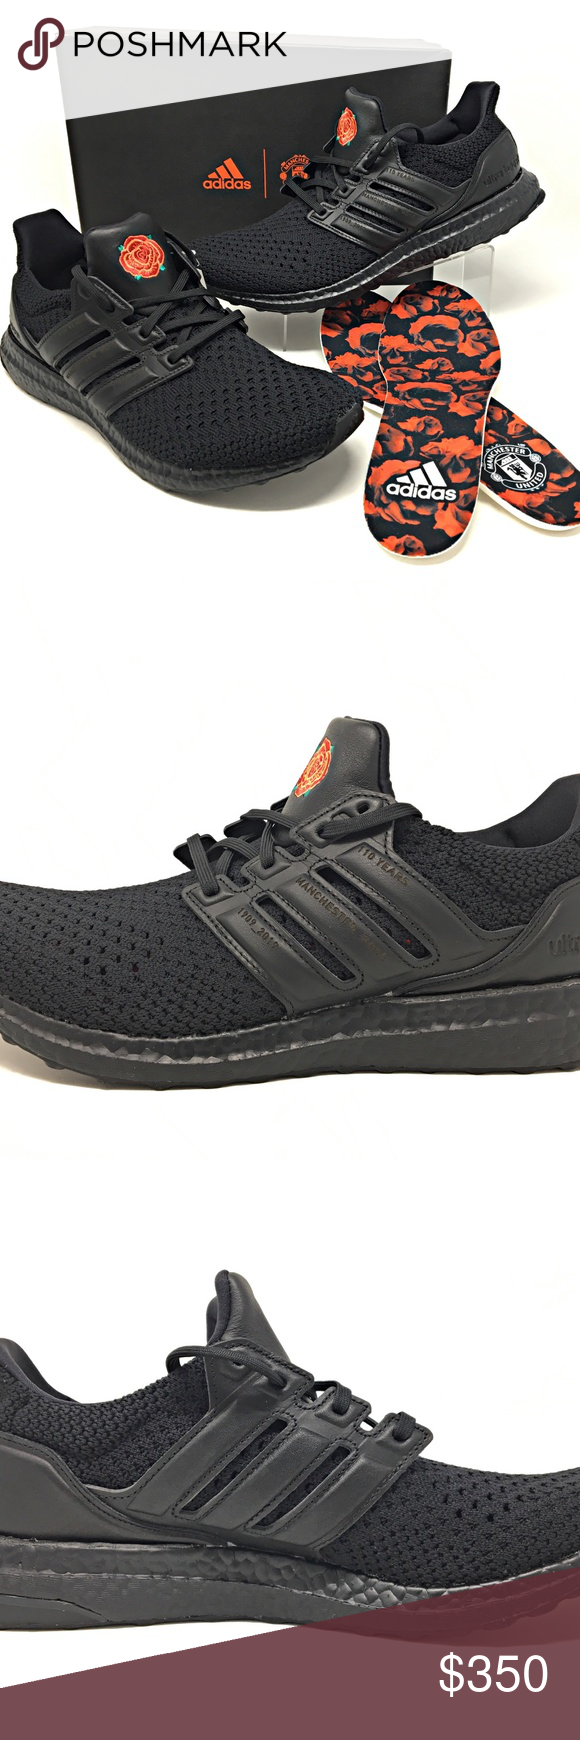 Adidas Manchester United Ultraboost Clima Sz 10 5 Adidas Manchester United Ultraboost Clima Rose All Black Sneakers Adidas Ultra Boost Shoes Sneakers Adidas